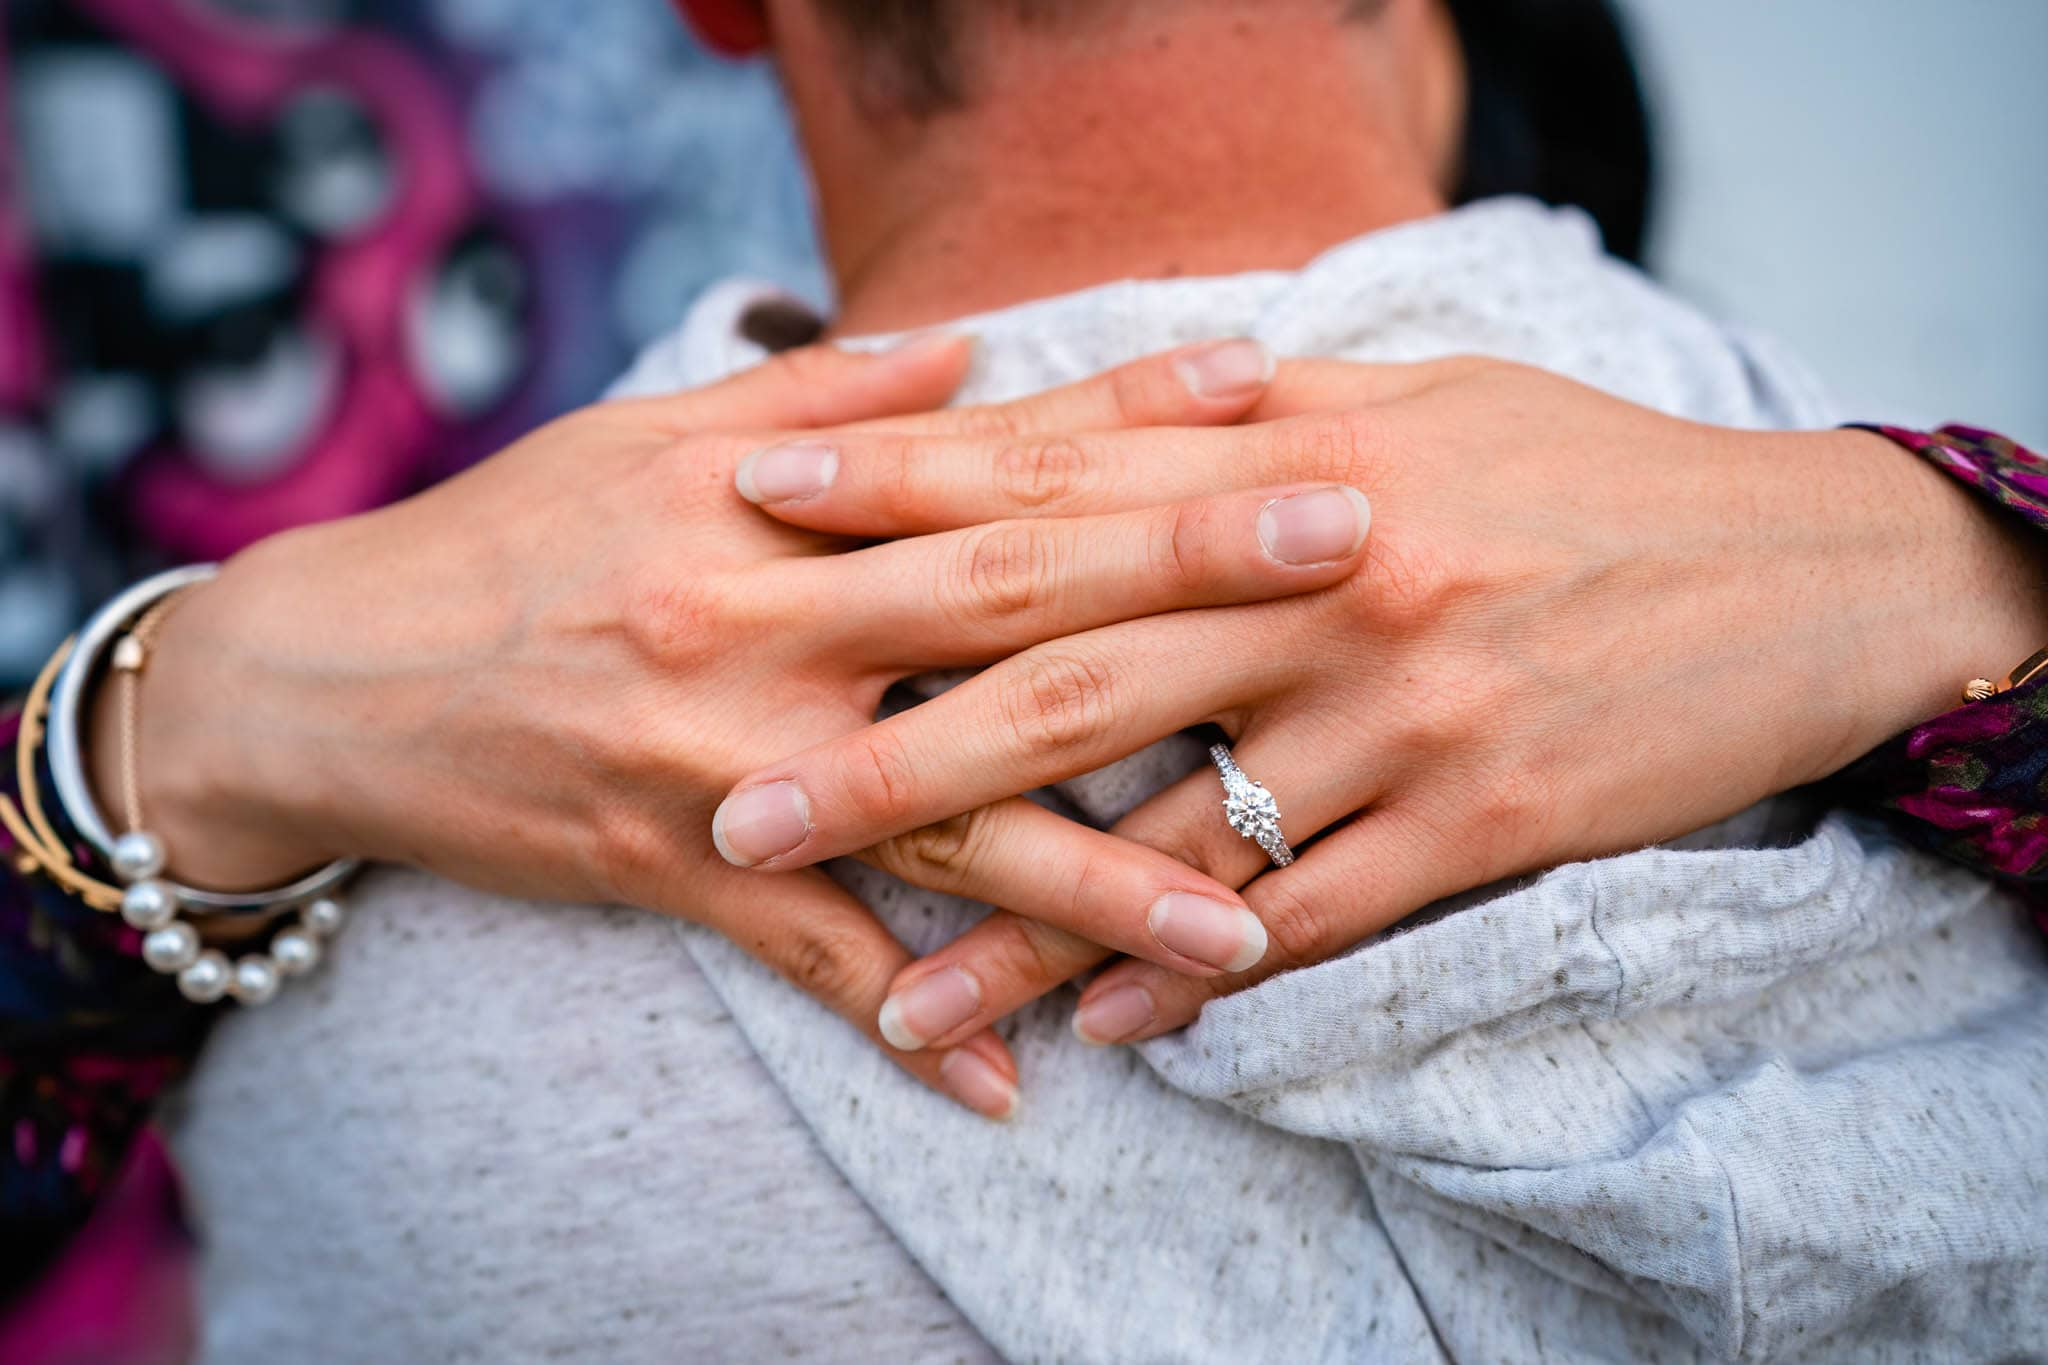 Woman wraps her arms around her fiance and shows her engagement ring in downtown Dayton.